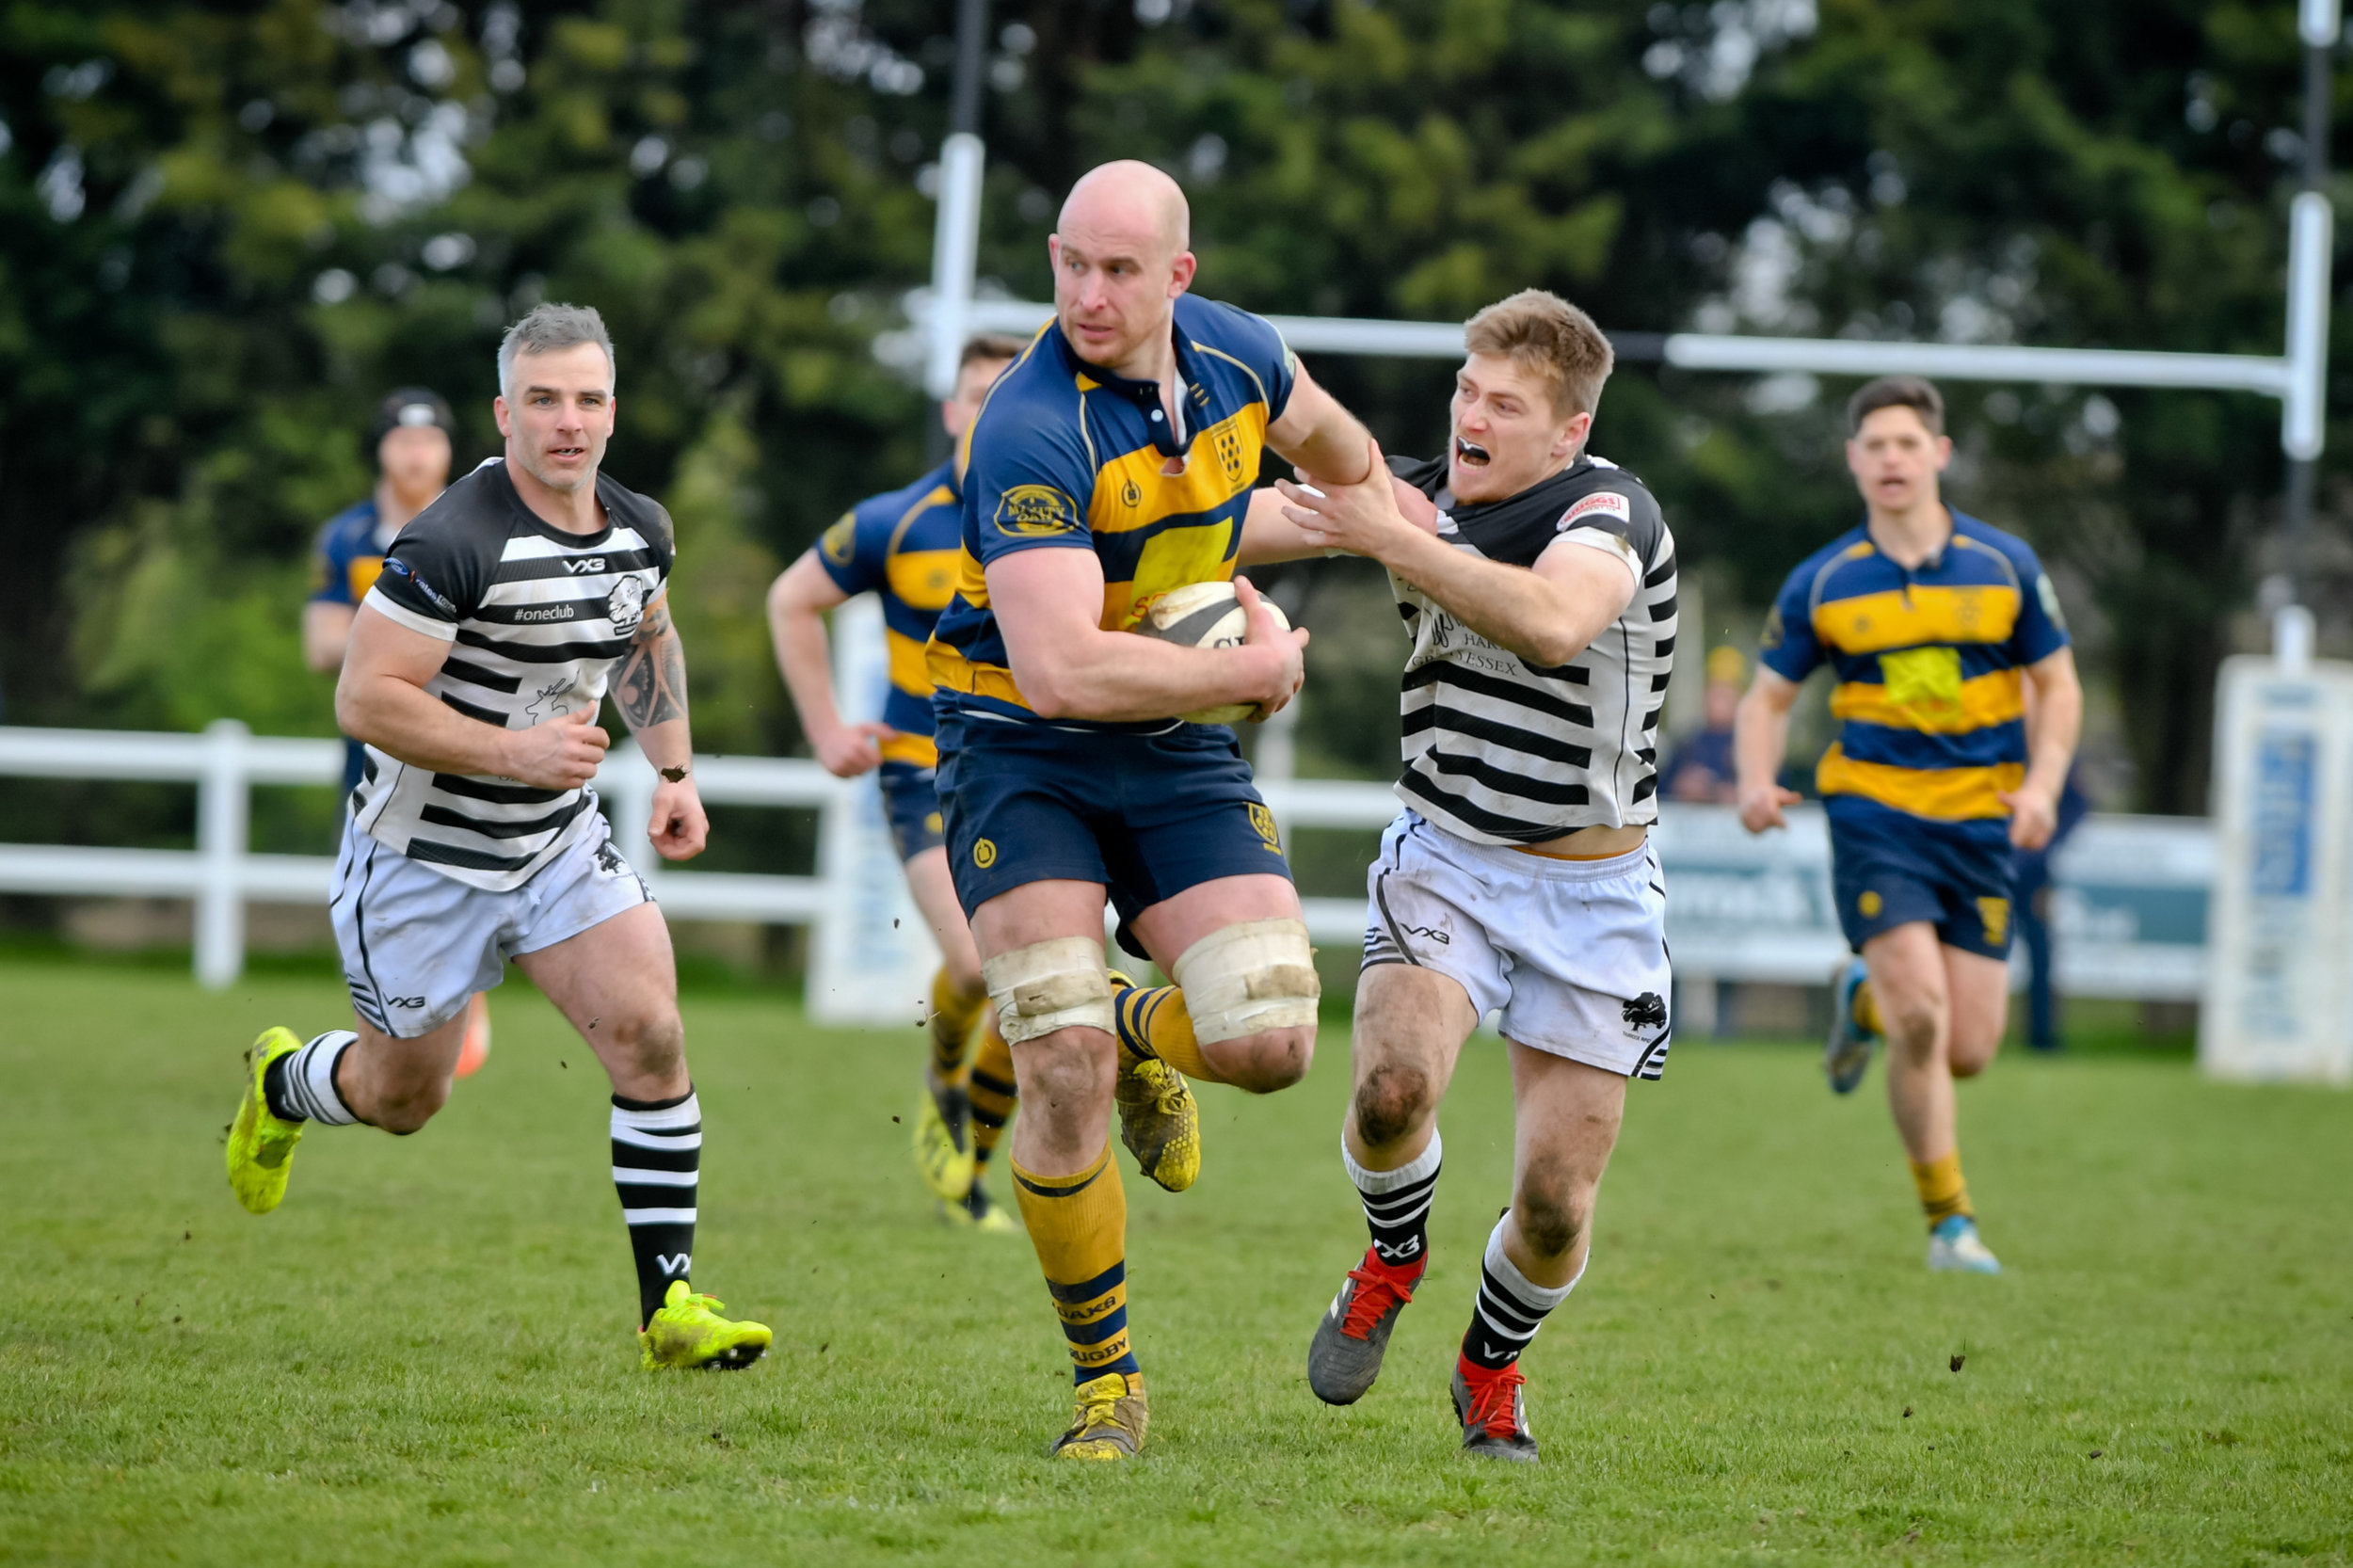 On the charge! Coleman fends off a would-be tackler in his final game as captain. Photo Credit: David Purday